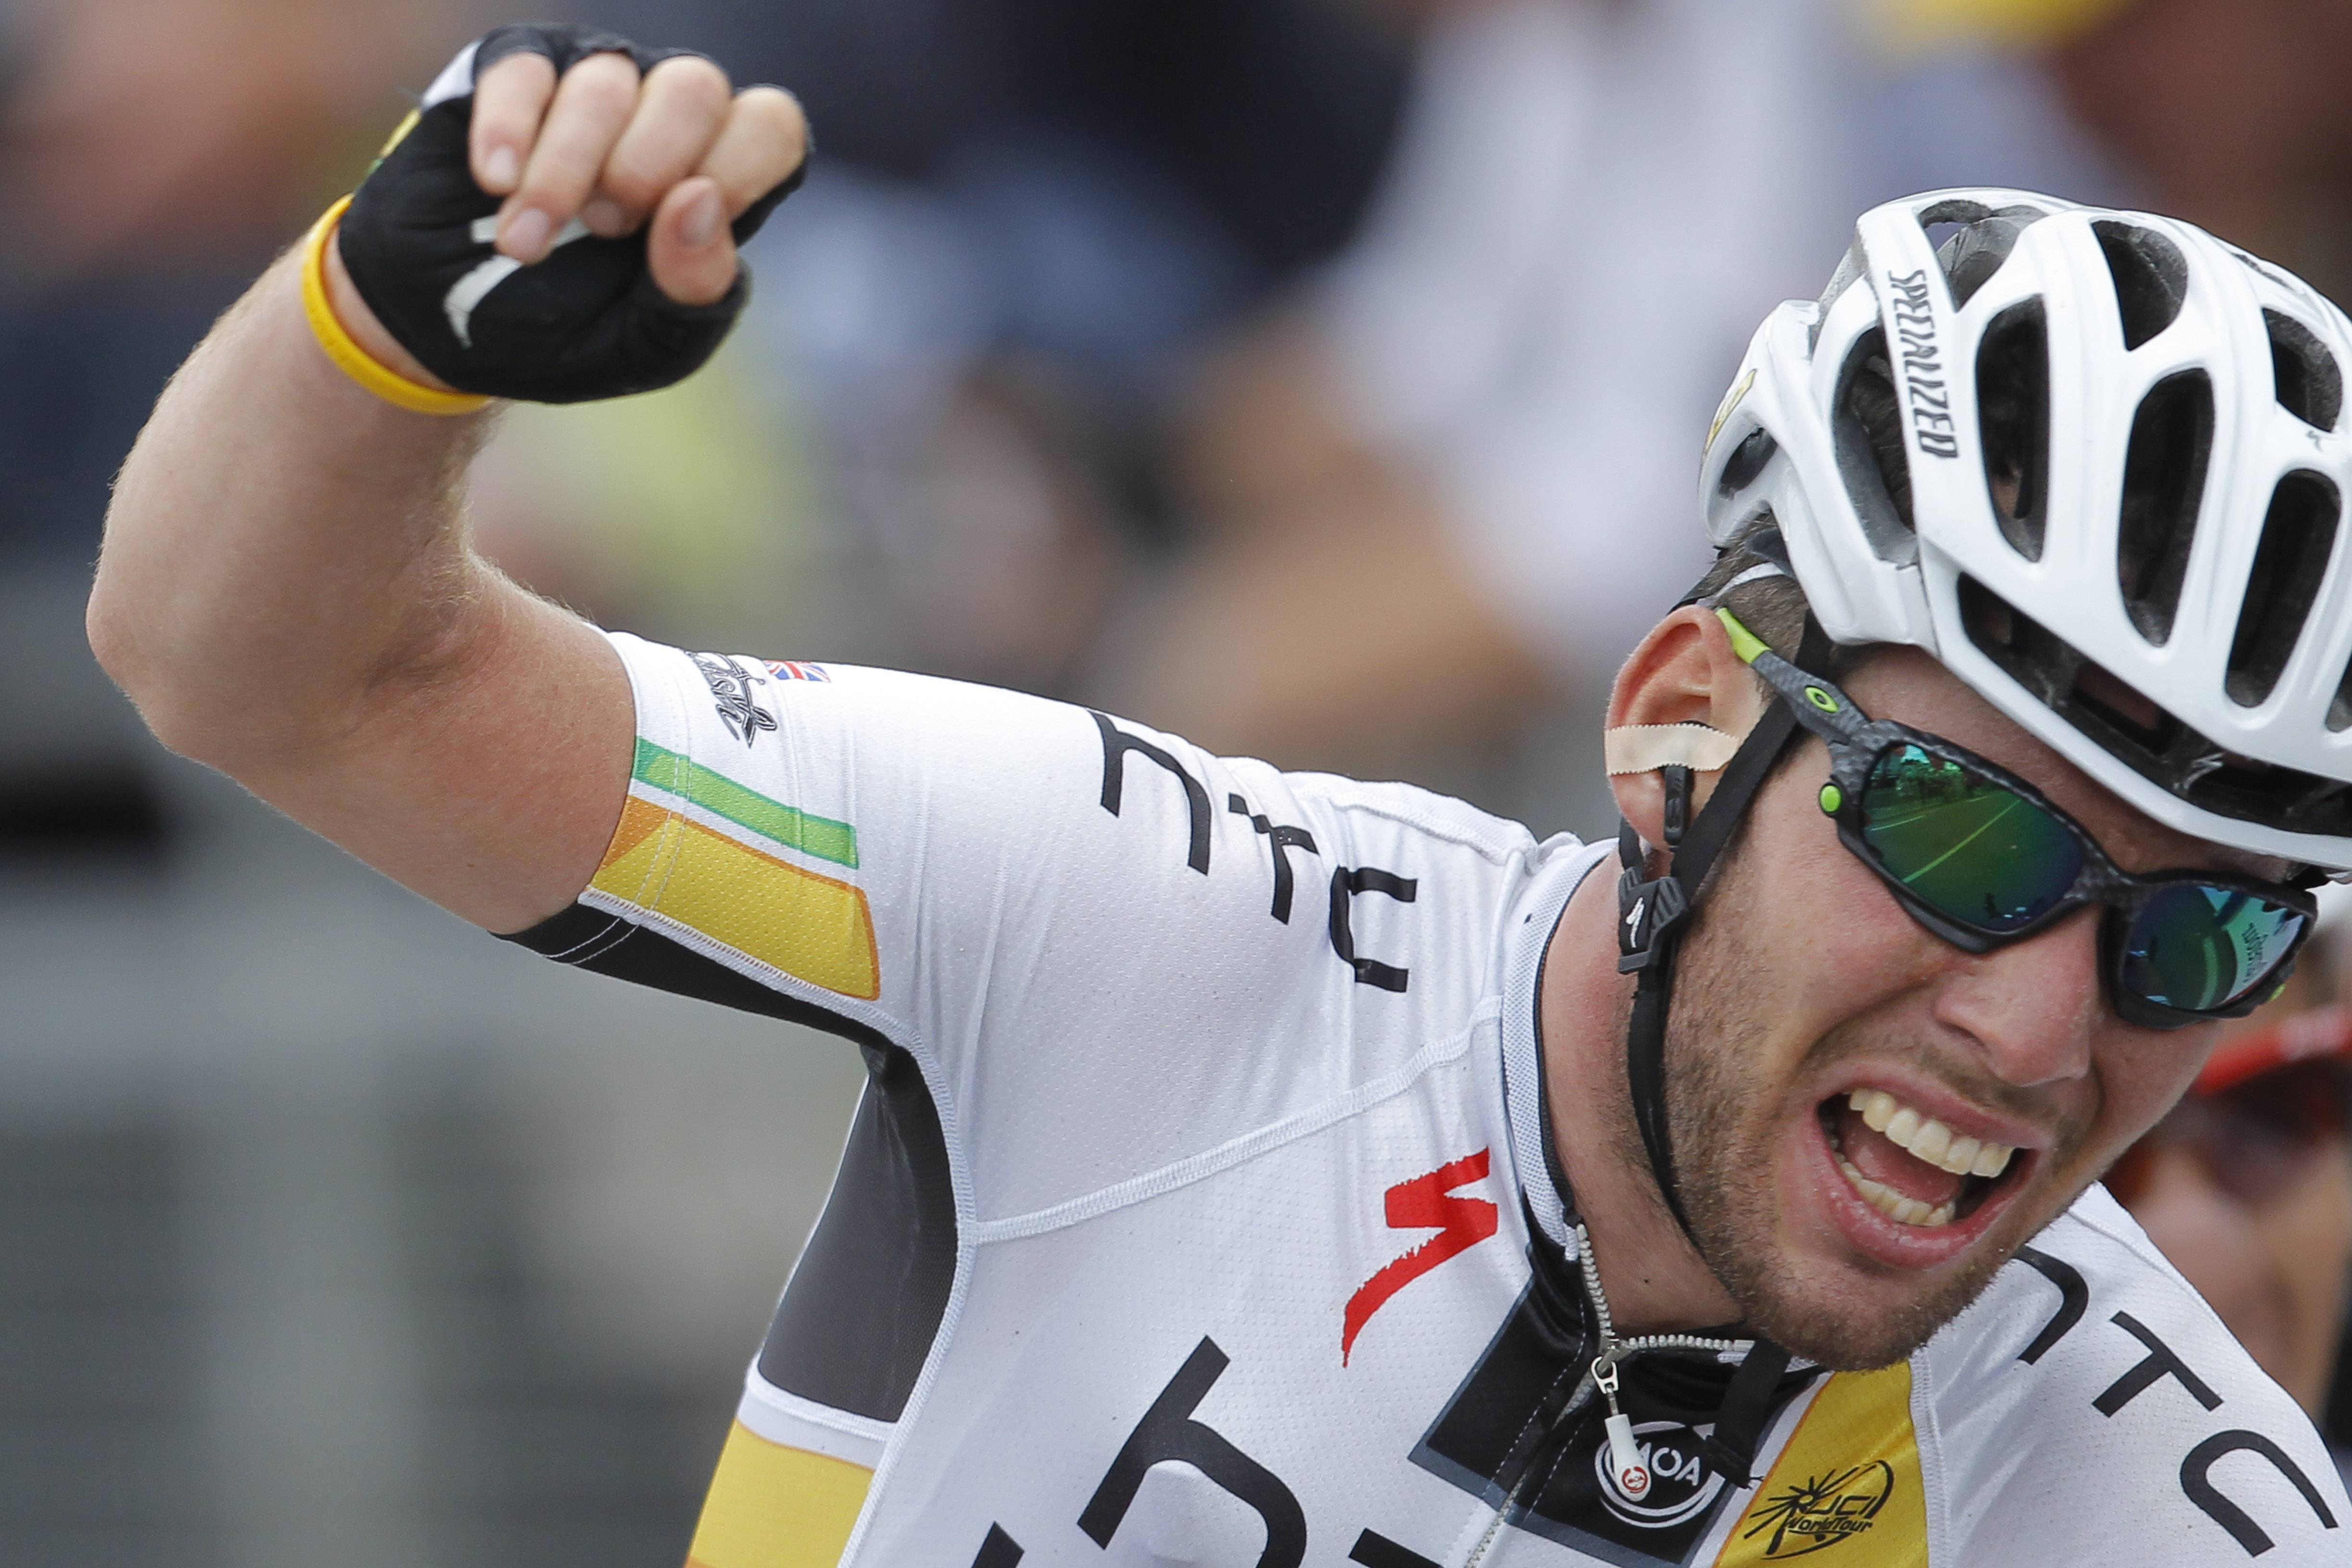 Cavendish wins crash-marred 5th Tour stage